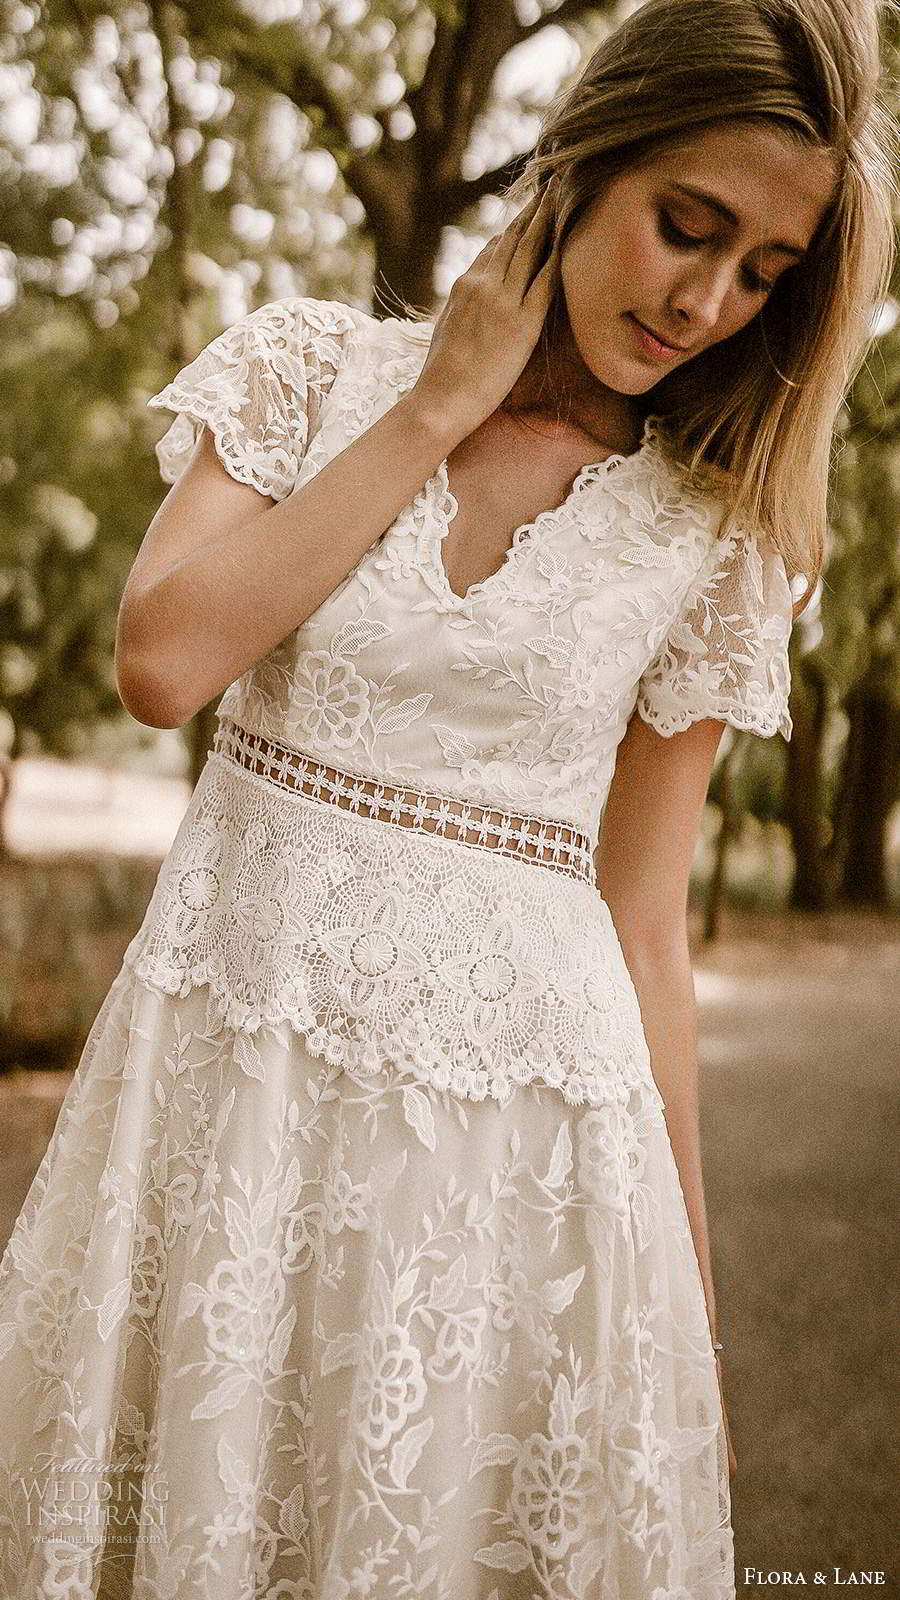 flora and lane 2019 bridal sheer short sleeves v neckline fully embellished lace romantic a line ball gown wedding dress keyhole back chapel train (5) mv